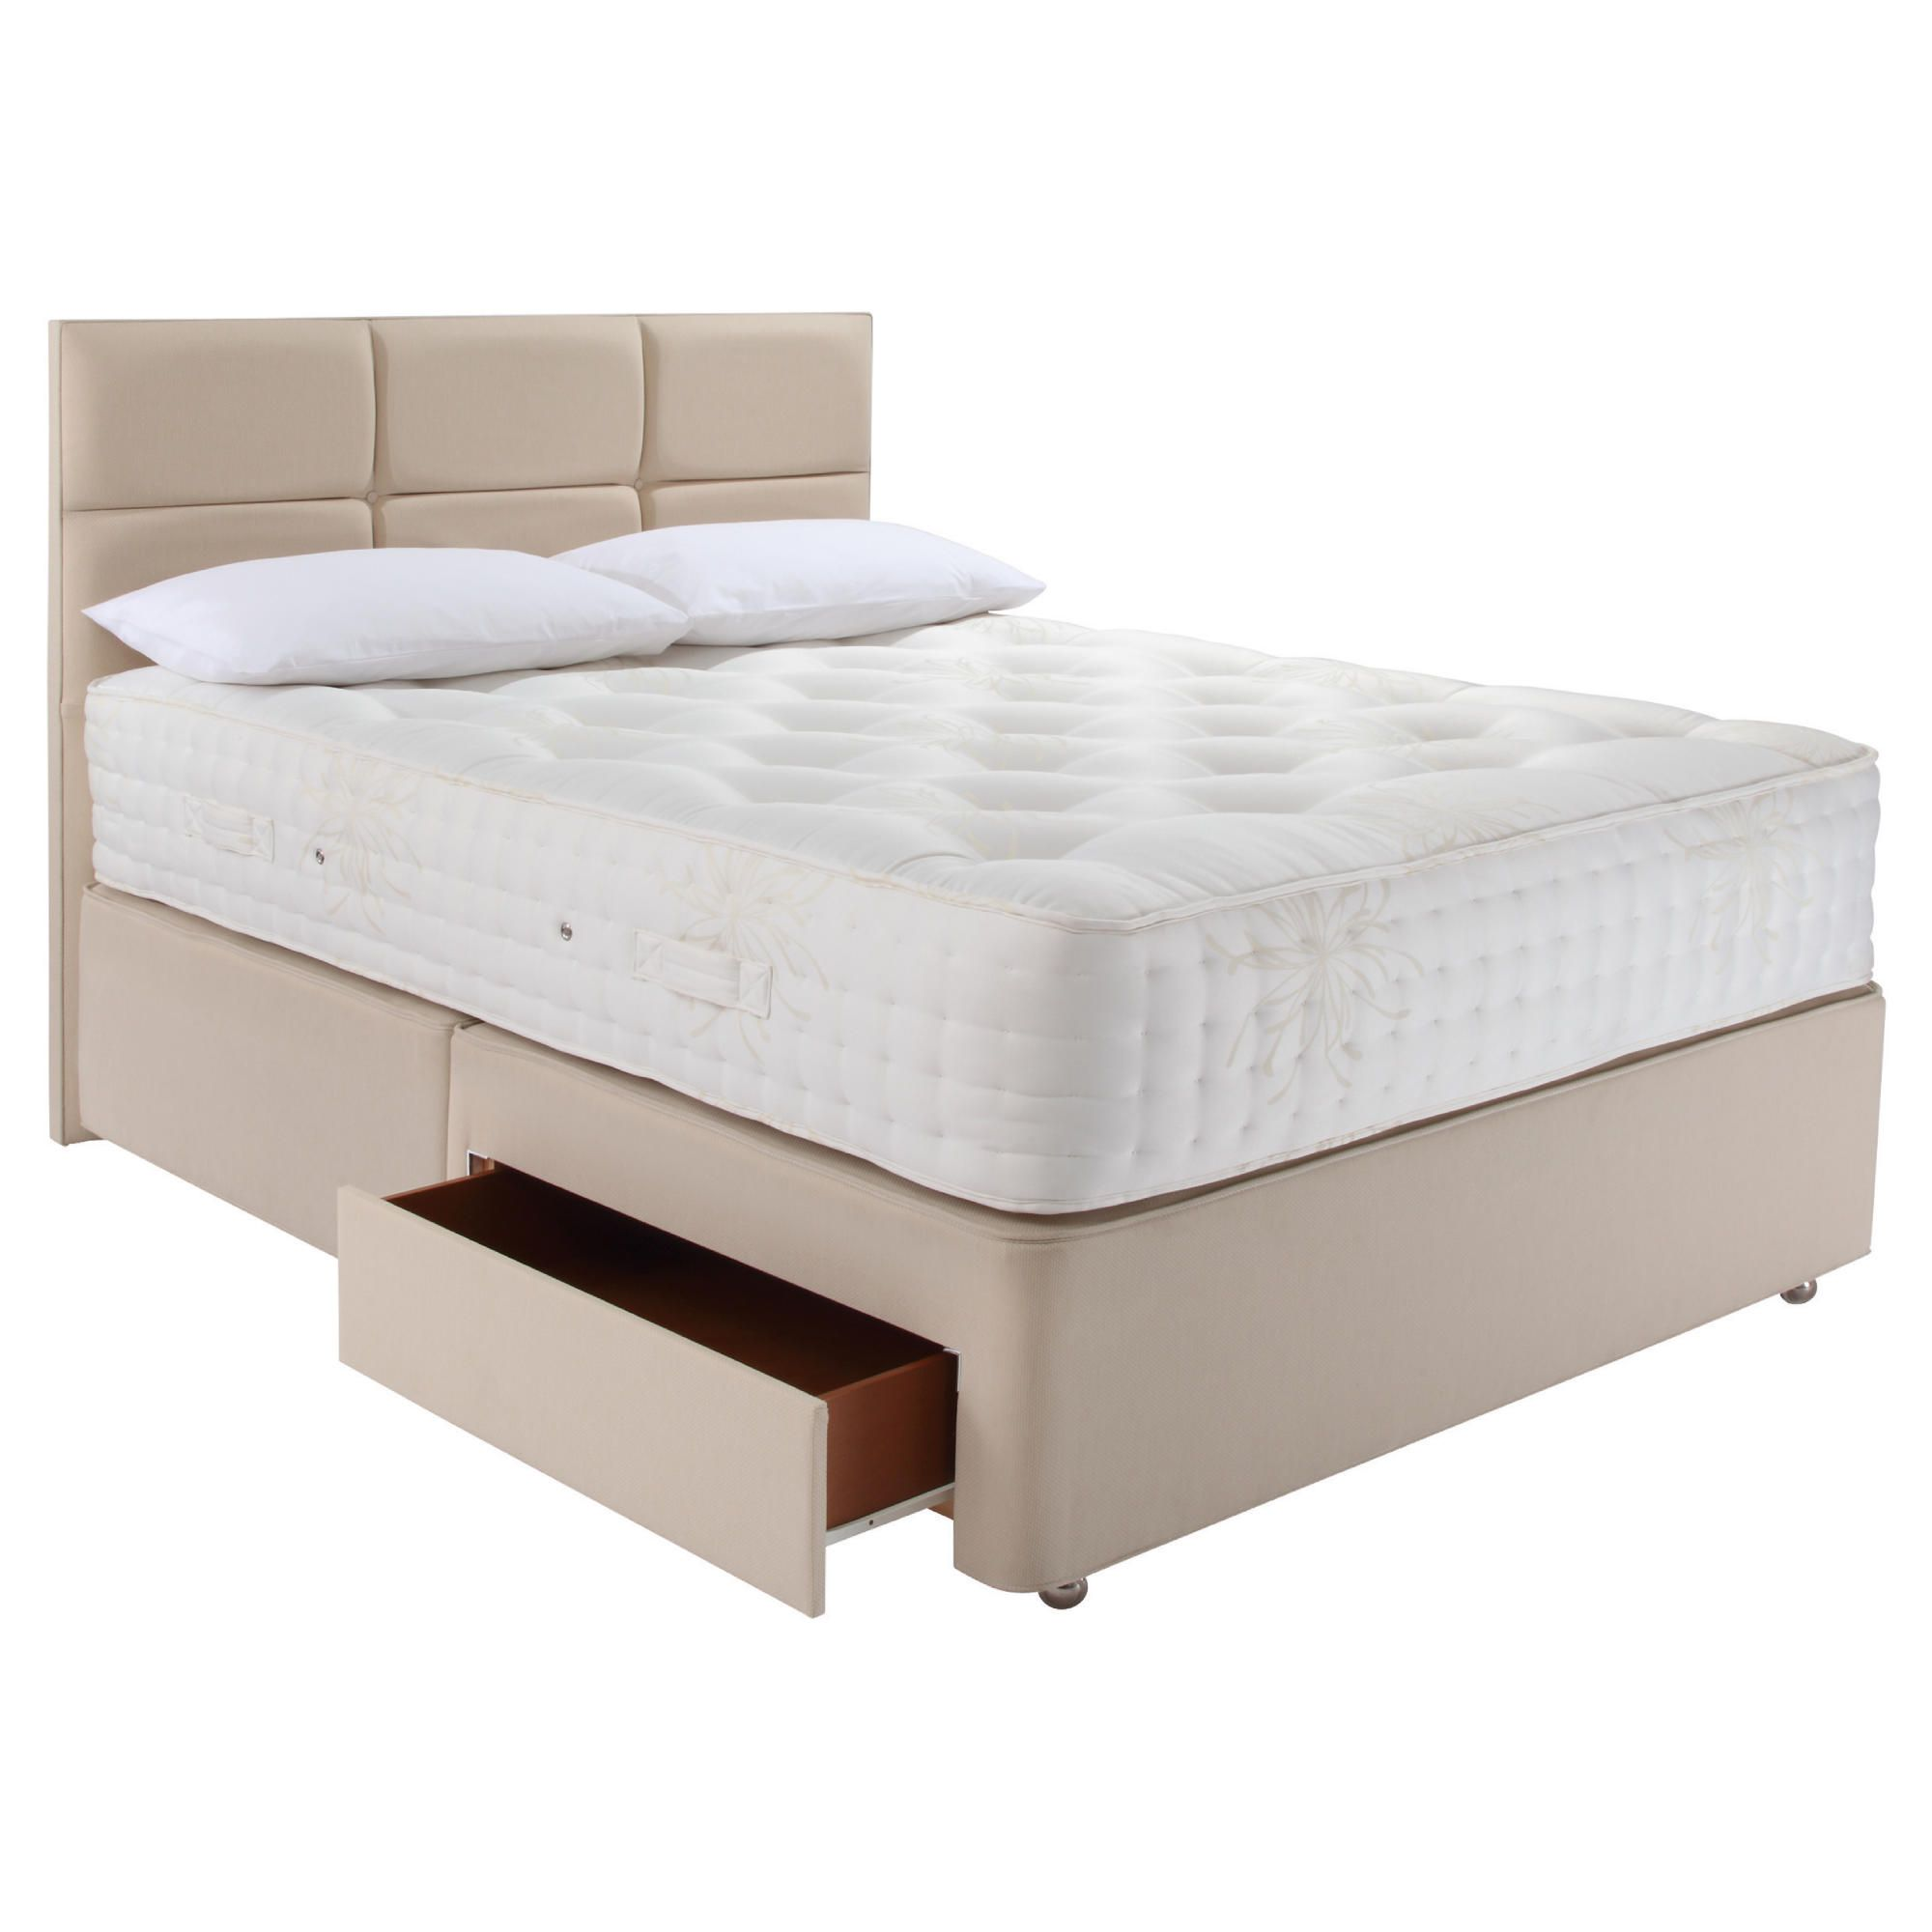 Relyon Luxury 1800 2 Drawer Divan Bed Superking at Tesco Direct